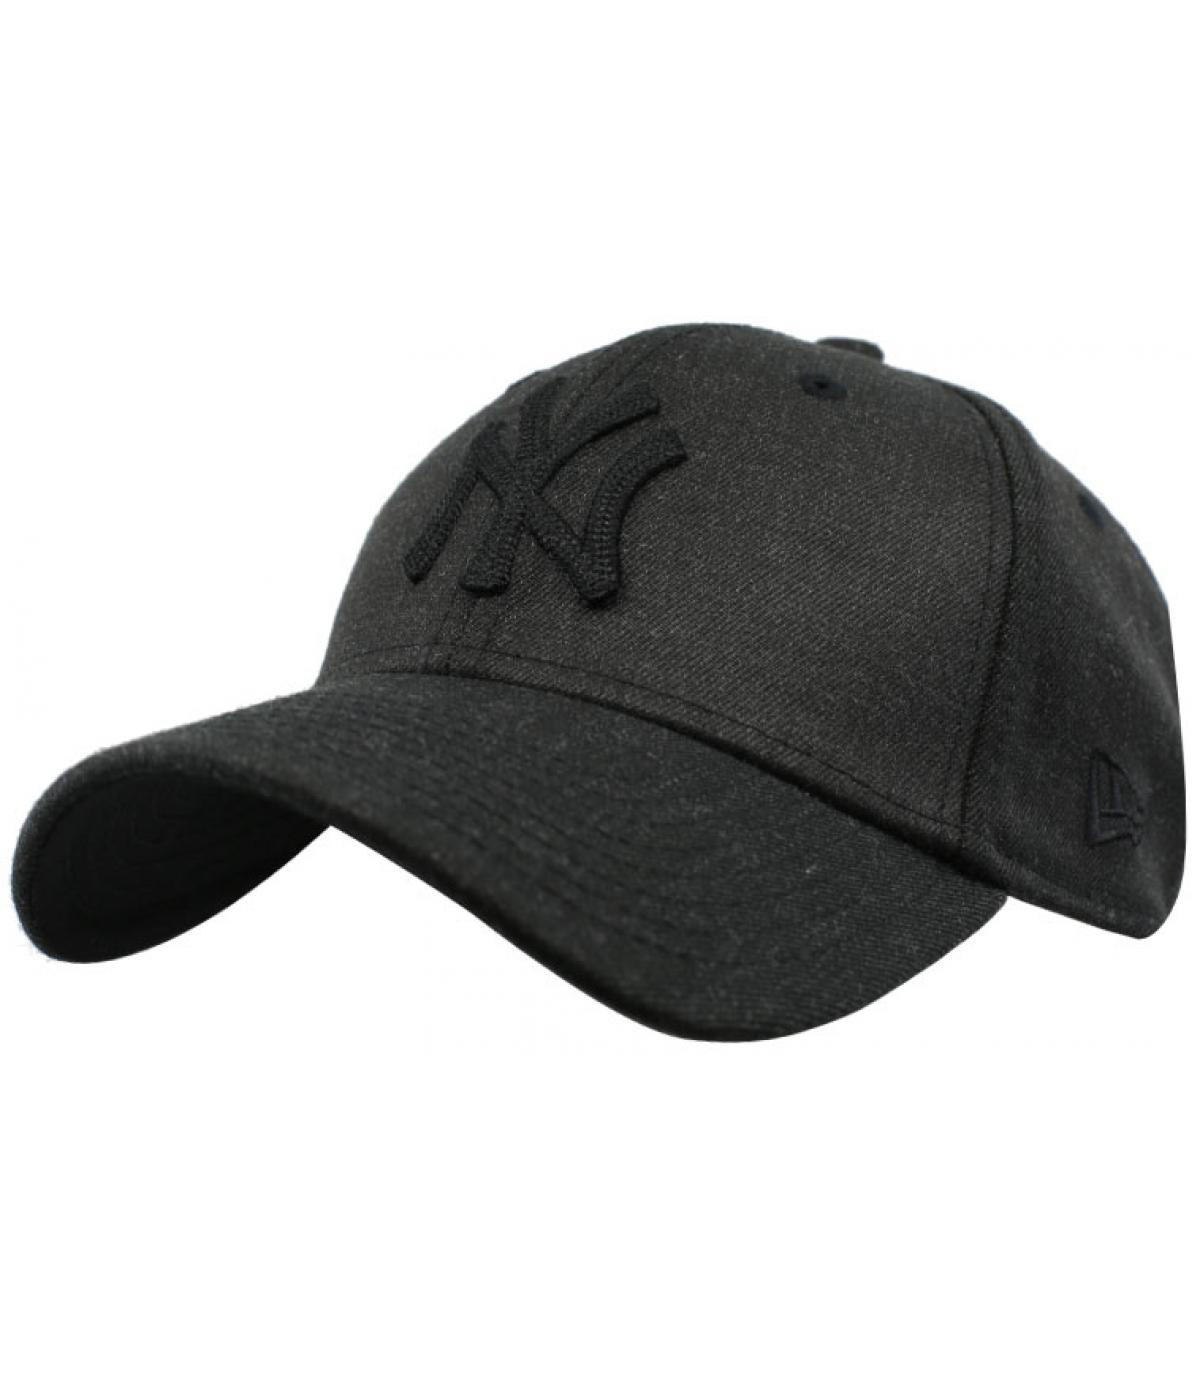 Détails Casquette MLB Heather 39Thirty NY black - image 2